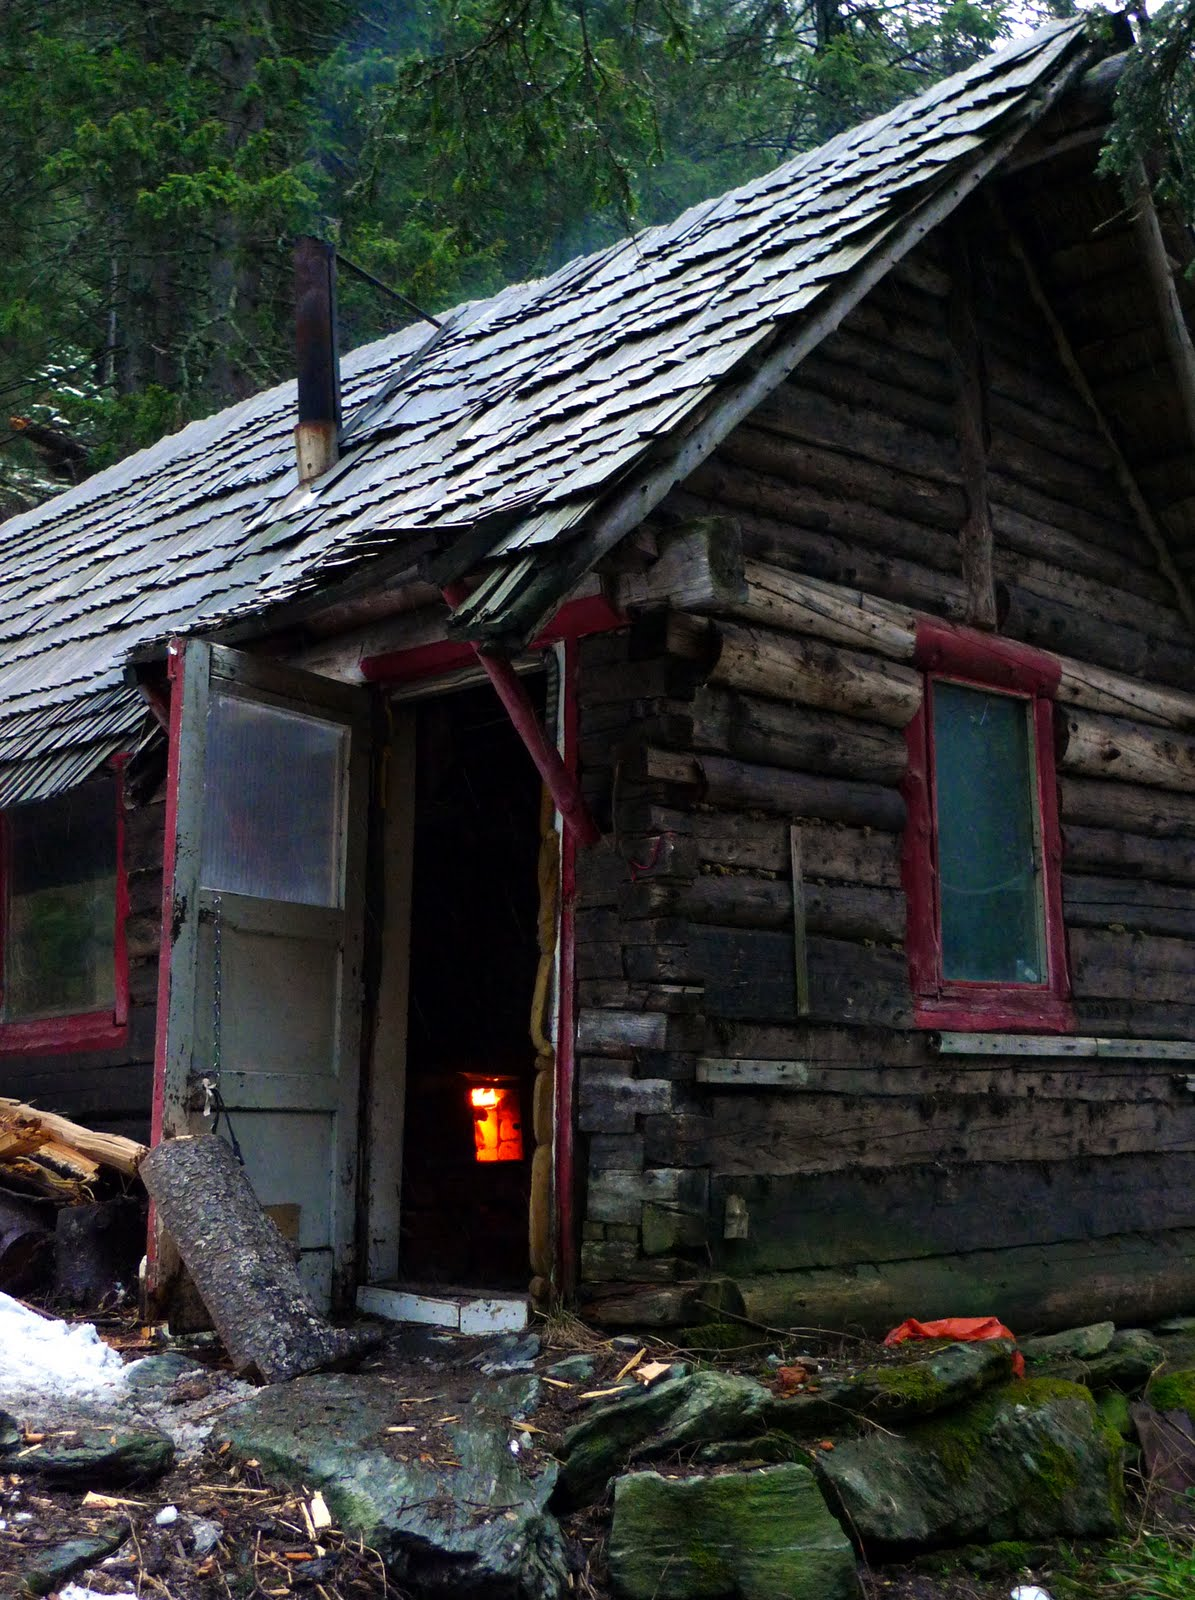 1000 images about cabins log cabins and log homes on for Log cabin gunsmithing